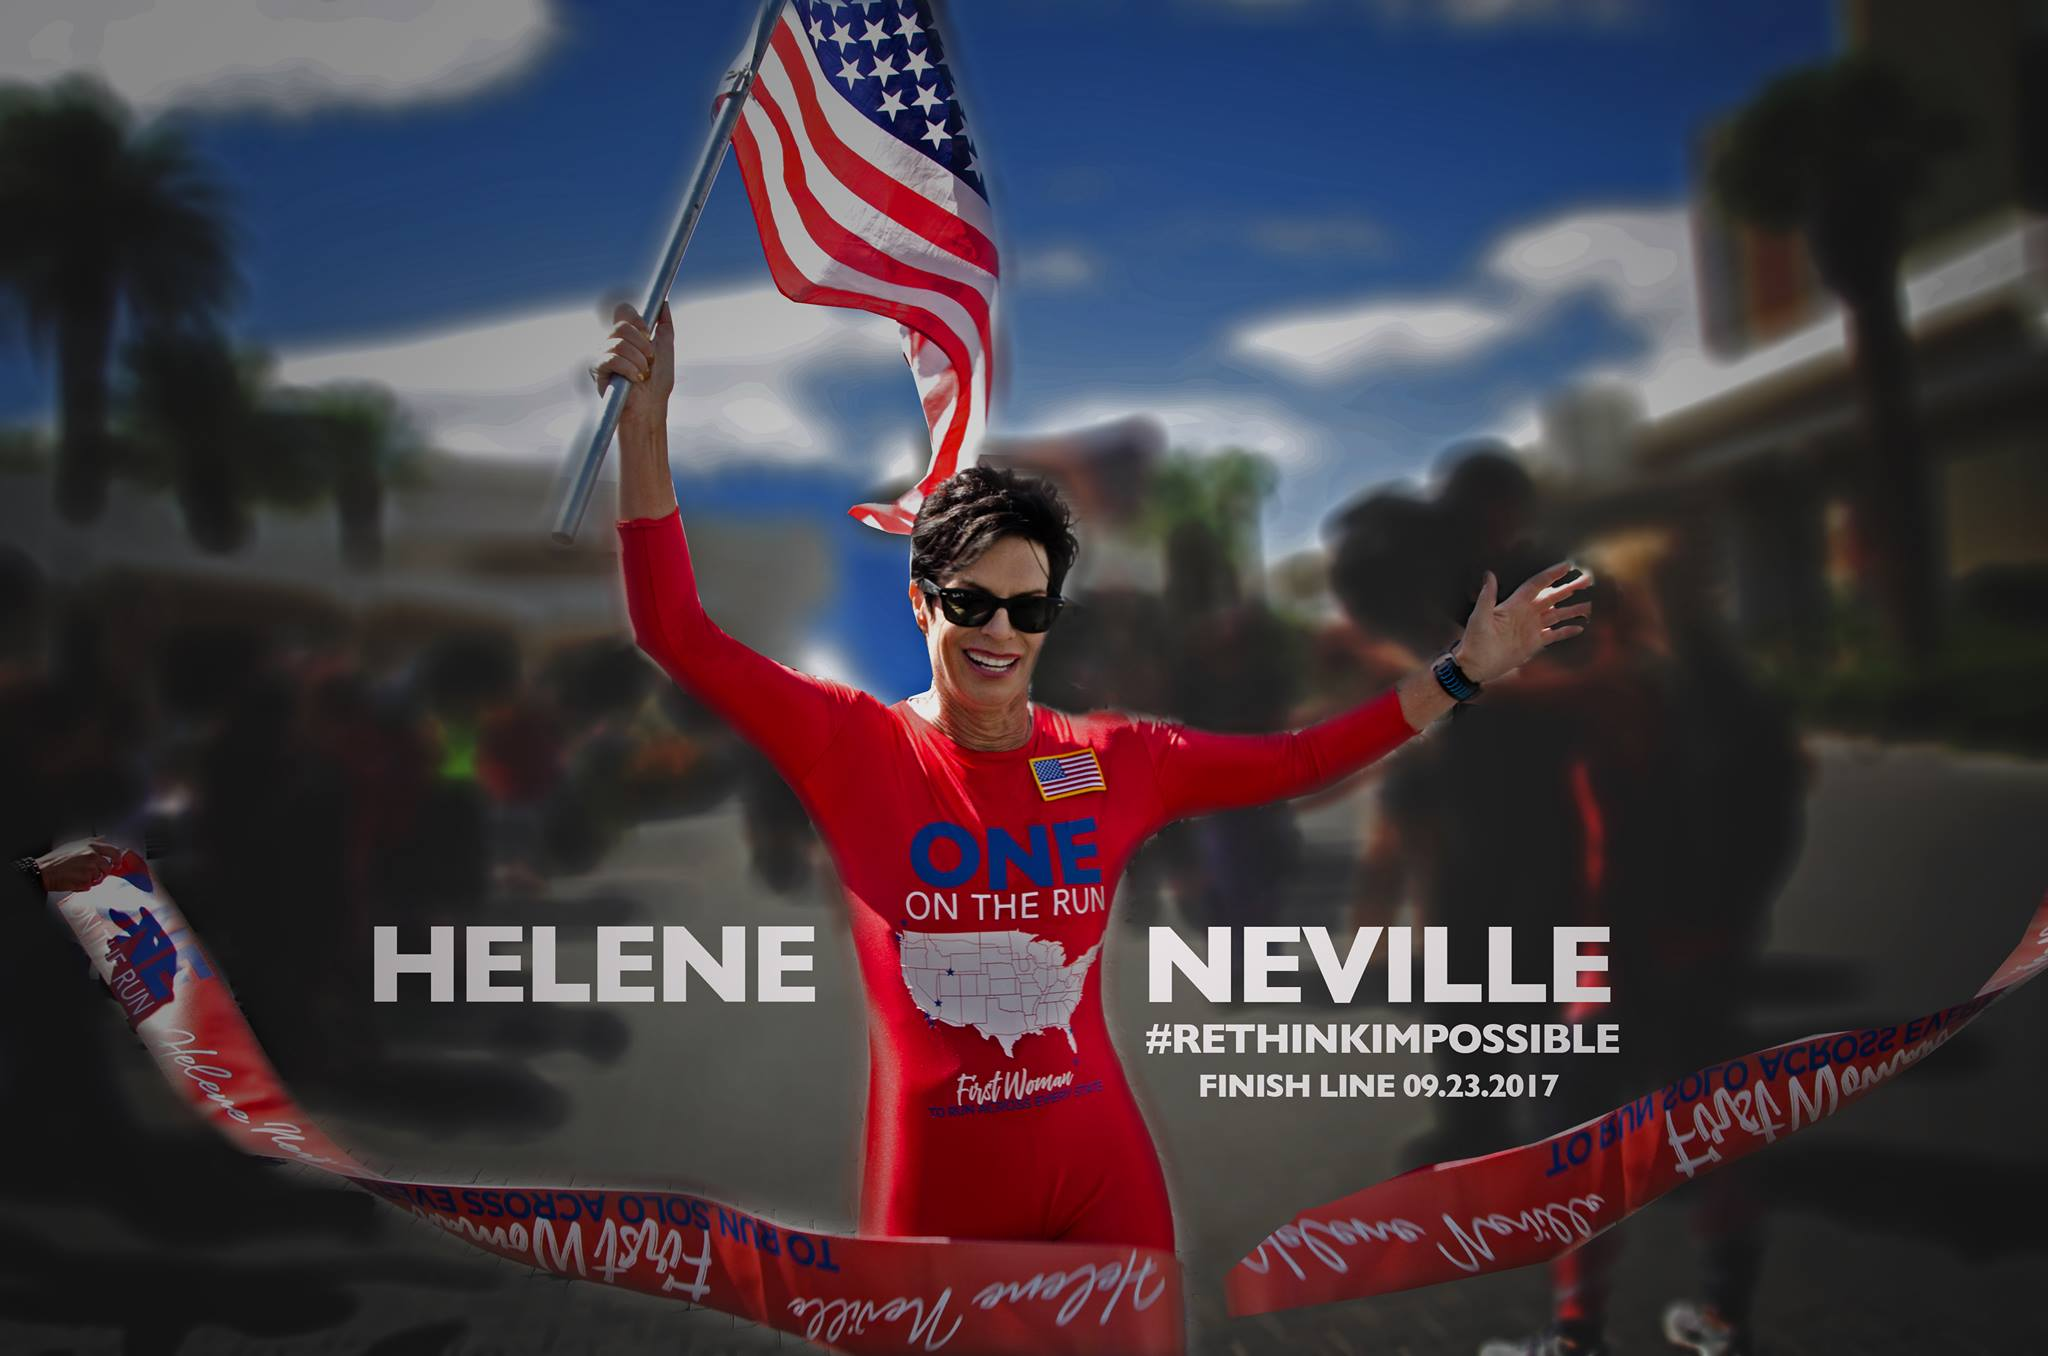 Wonder Woman Helene Neville Crosses Finish Line